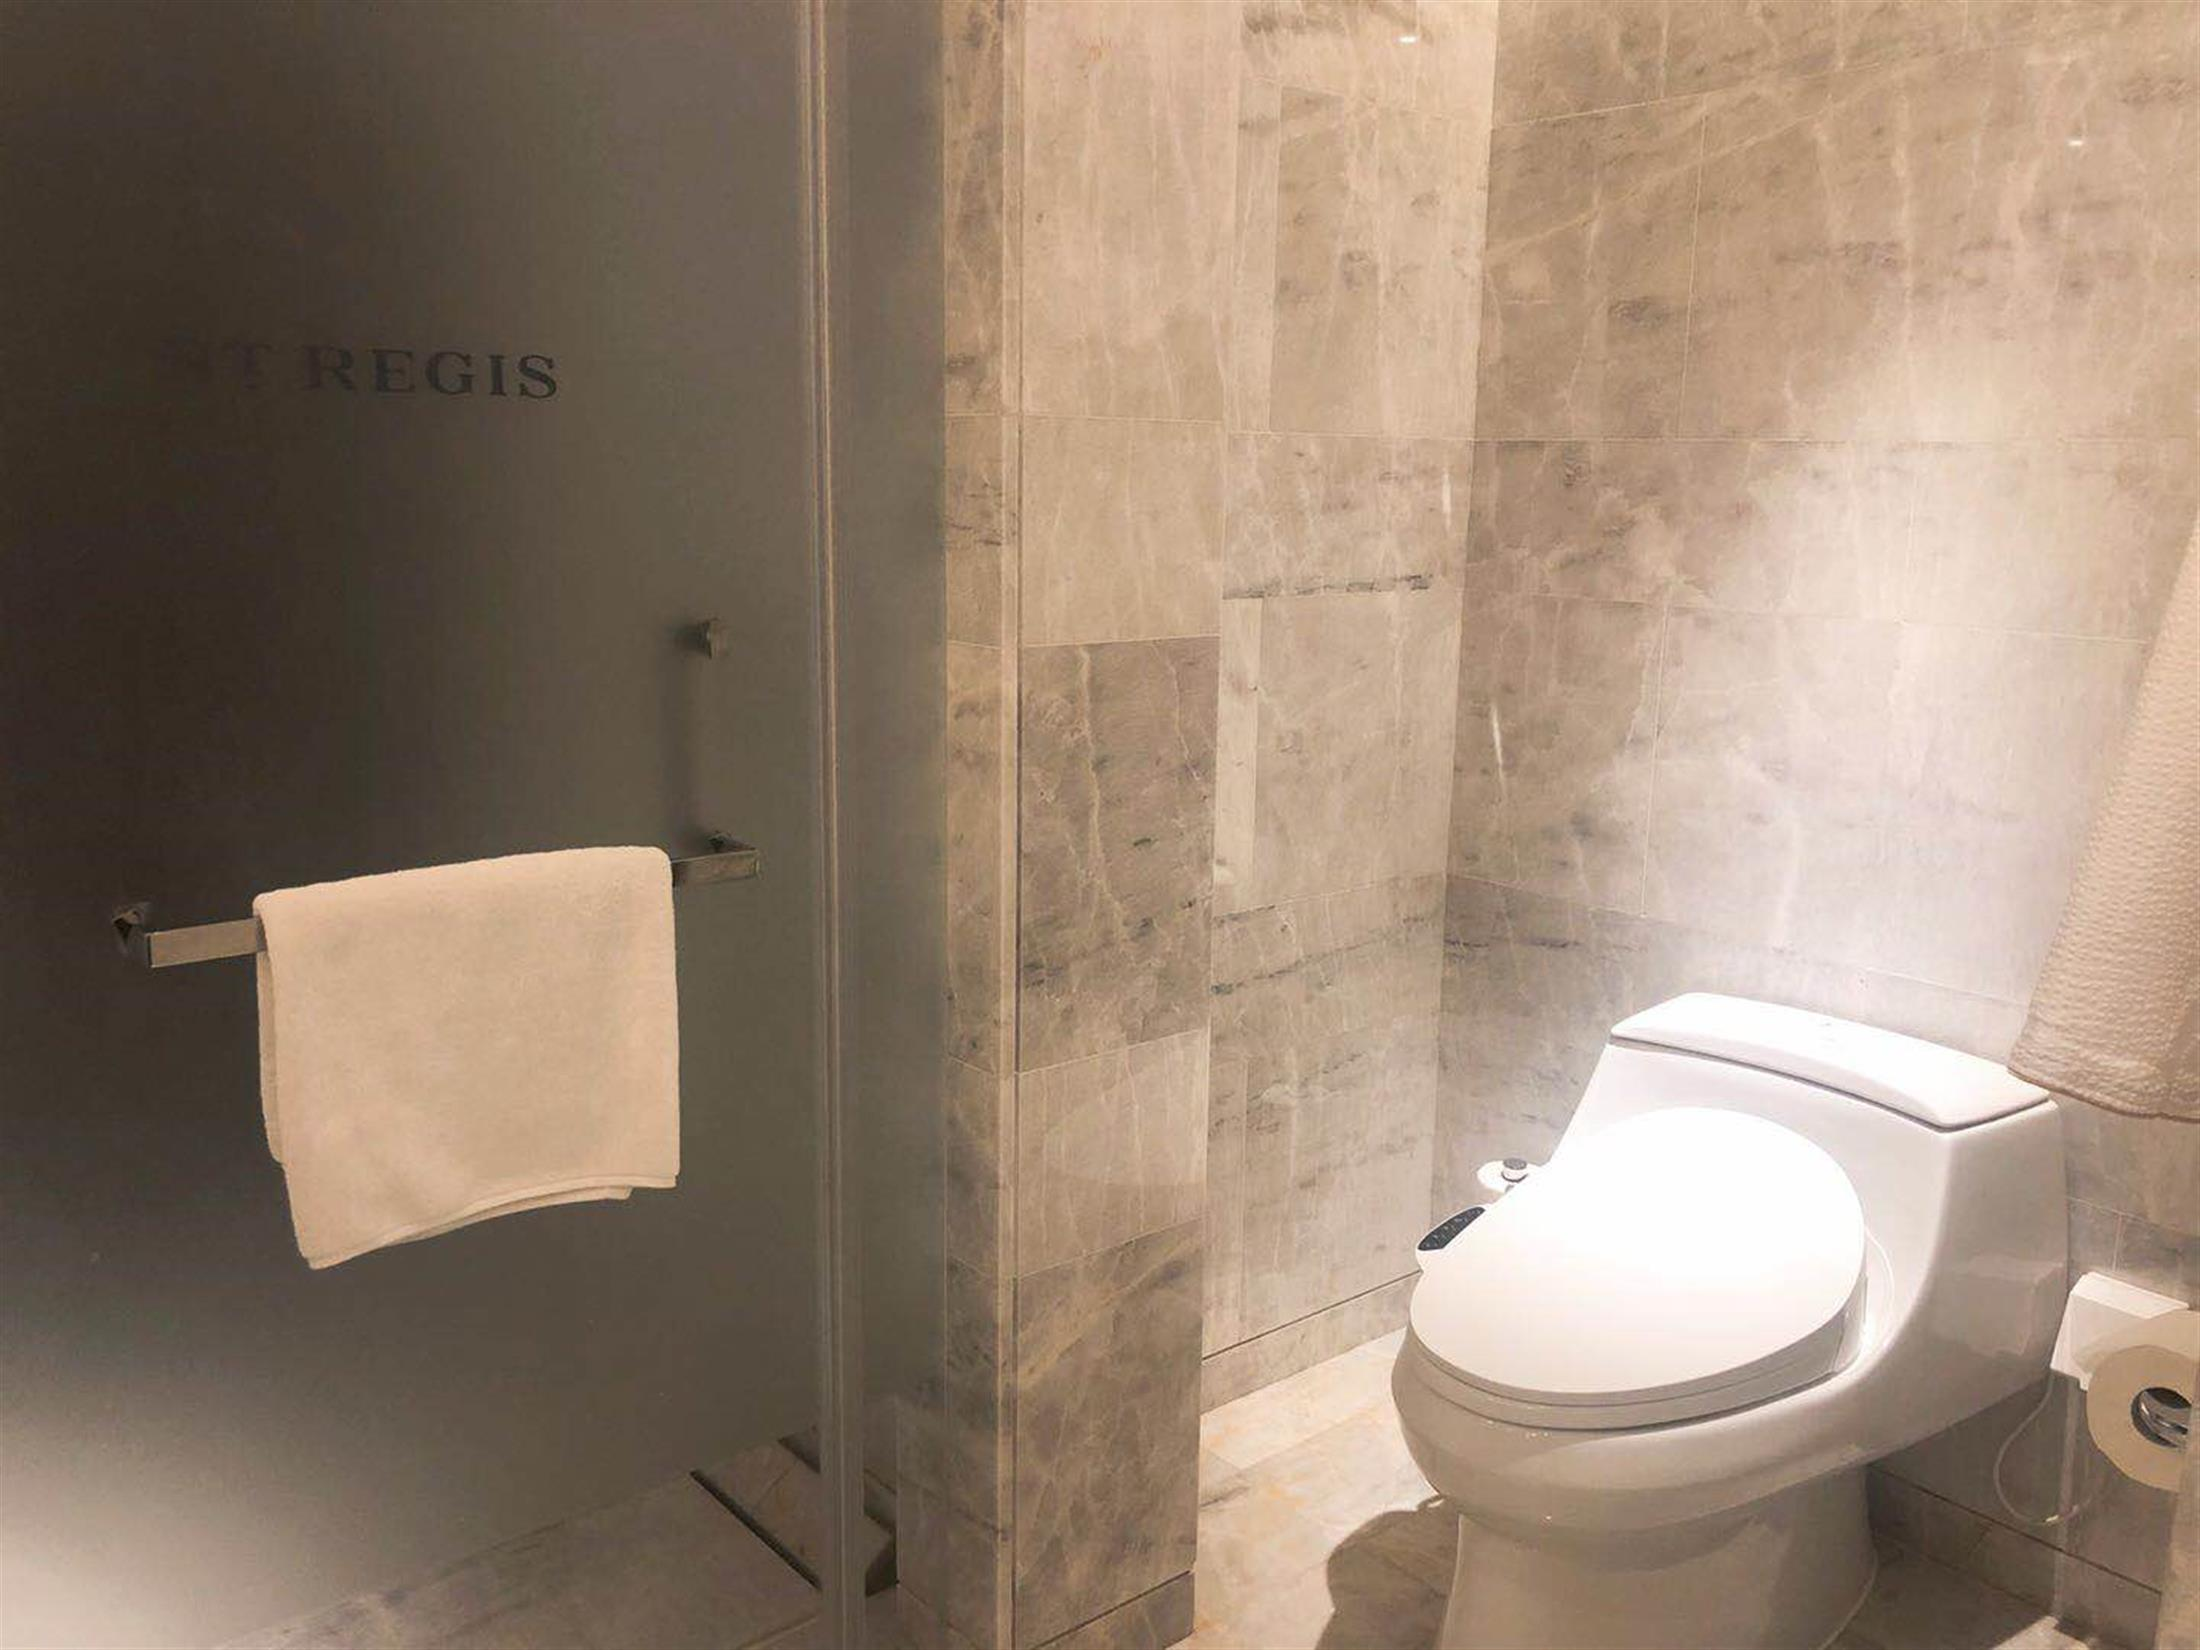 Electric Toilet Top-End Ultra-Lux Service Apartment in Puxi